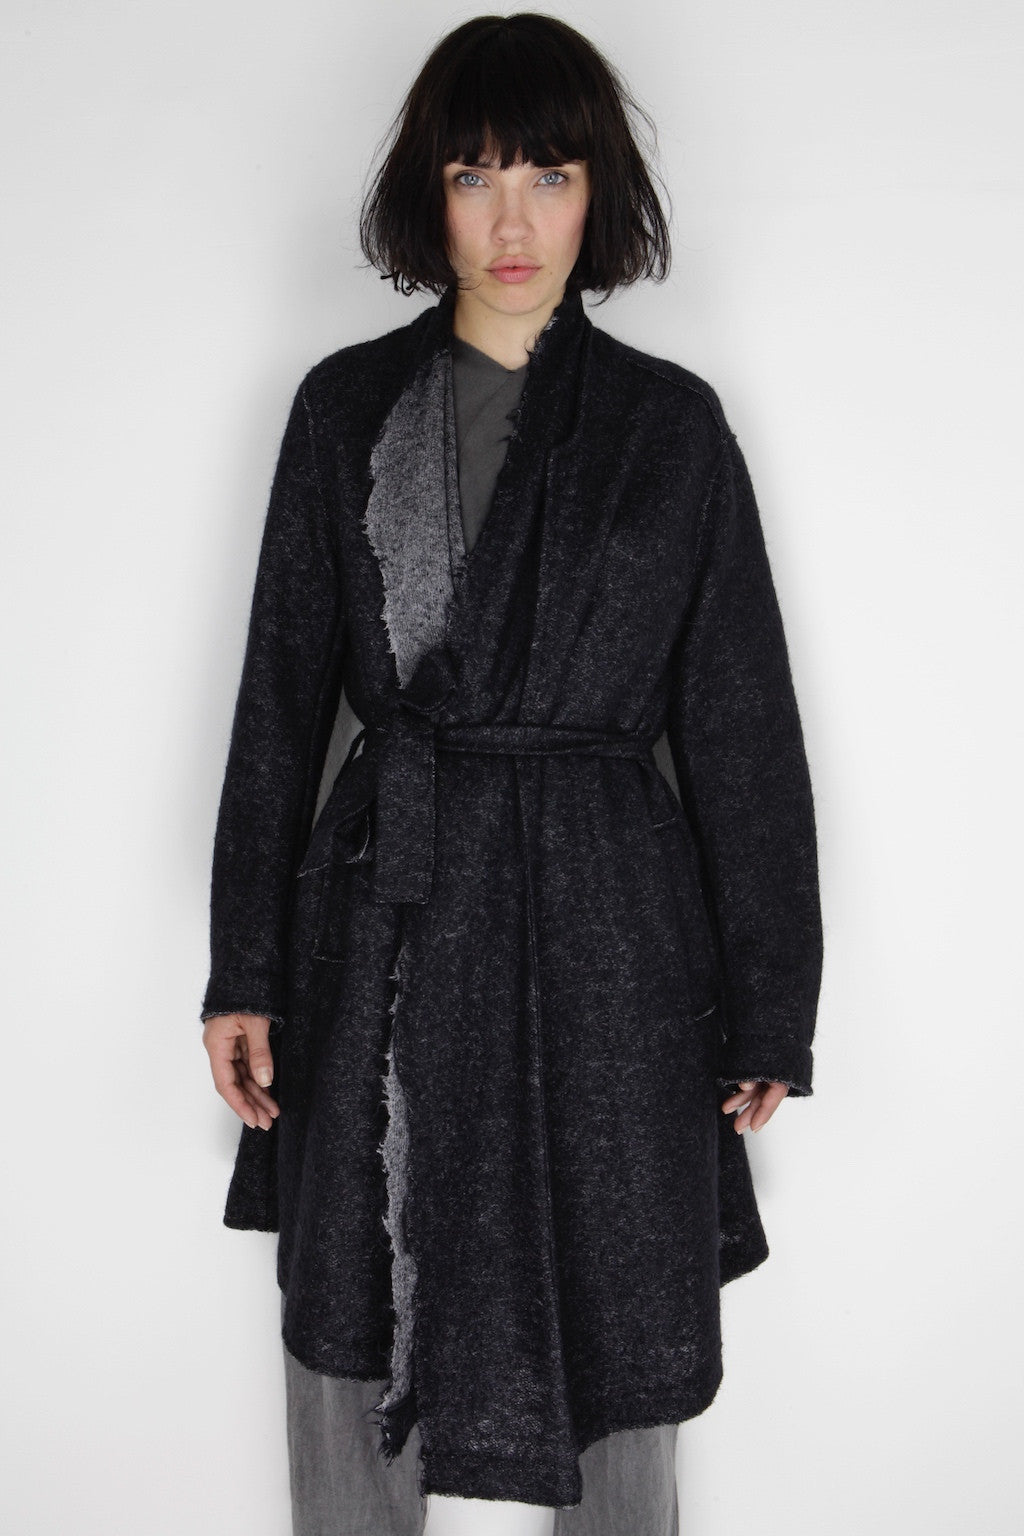 deconstructed coat